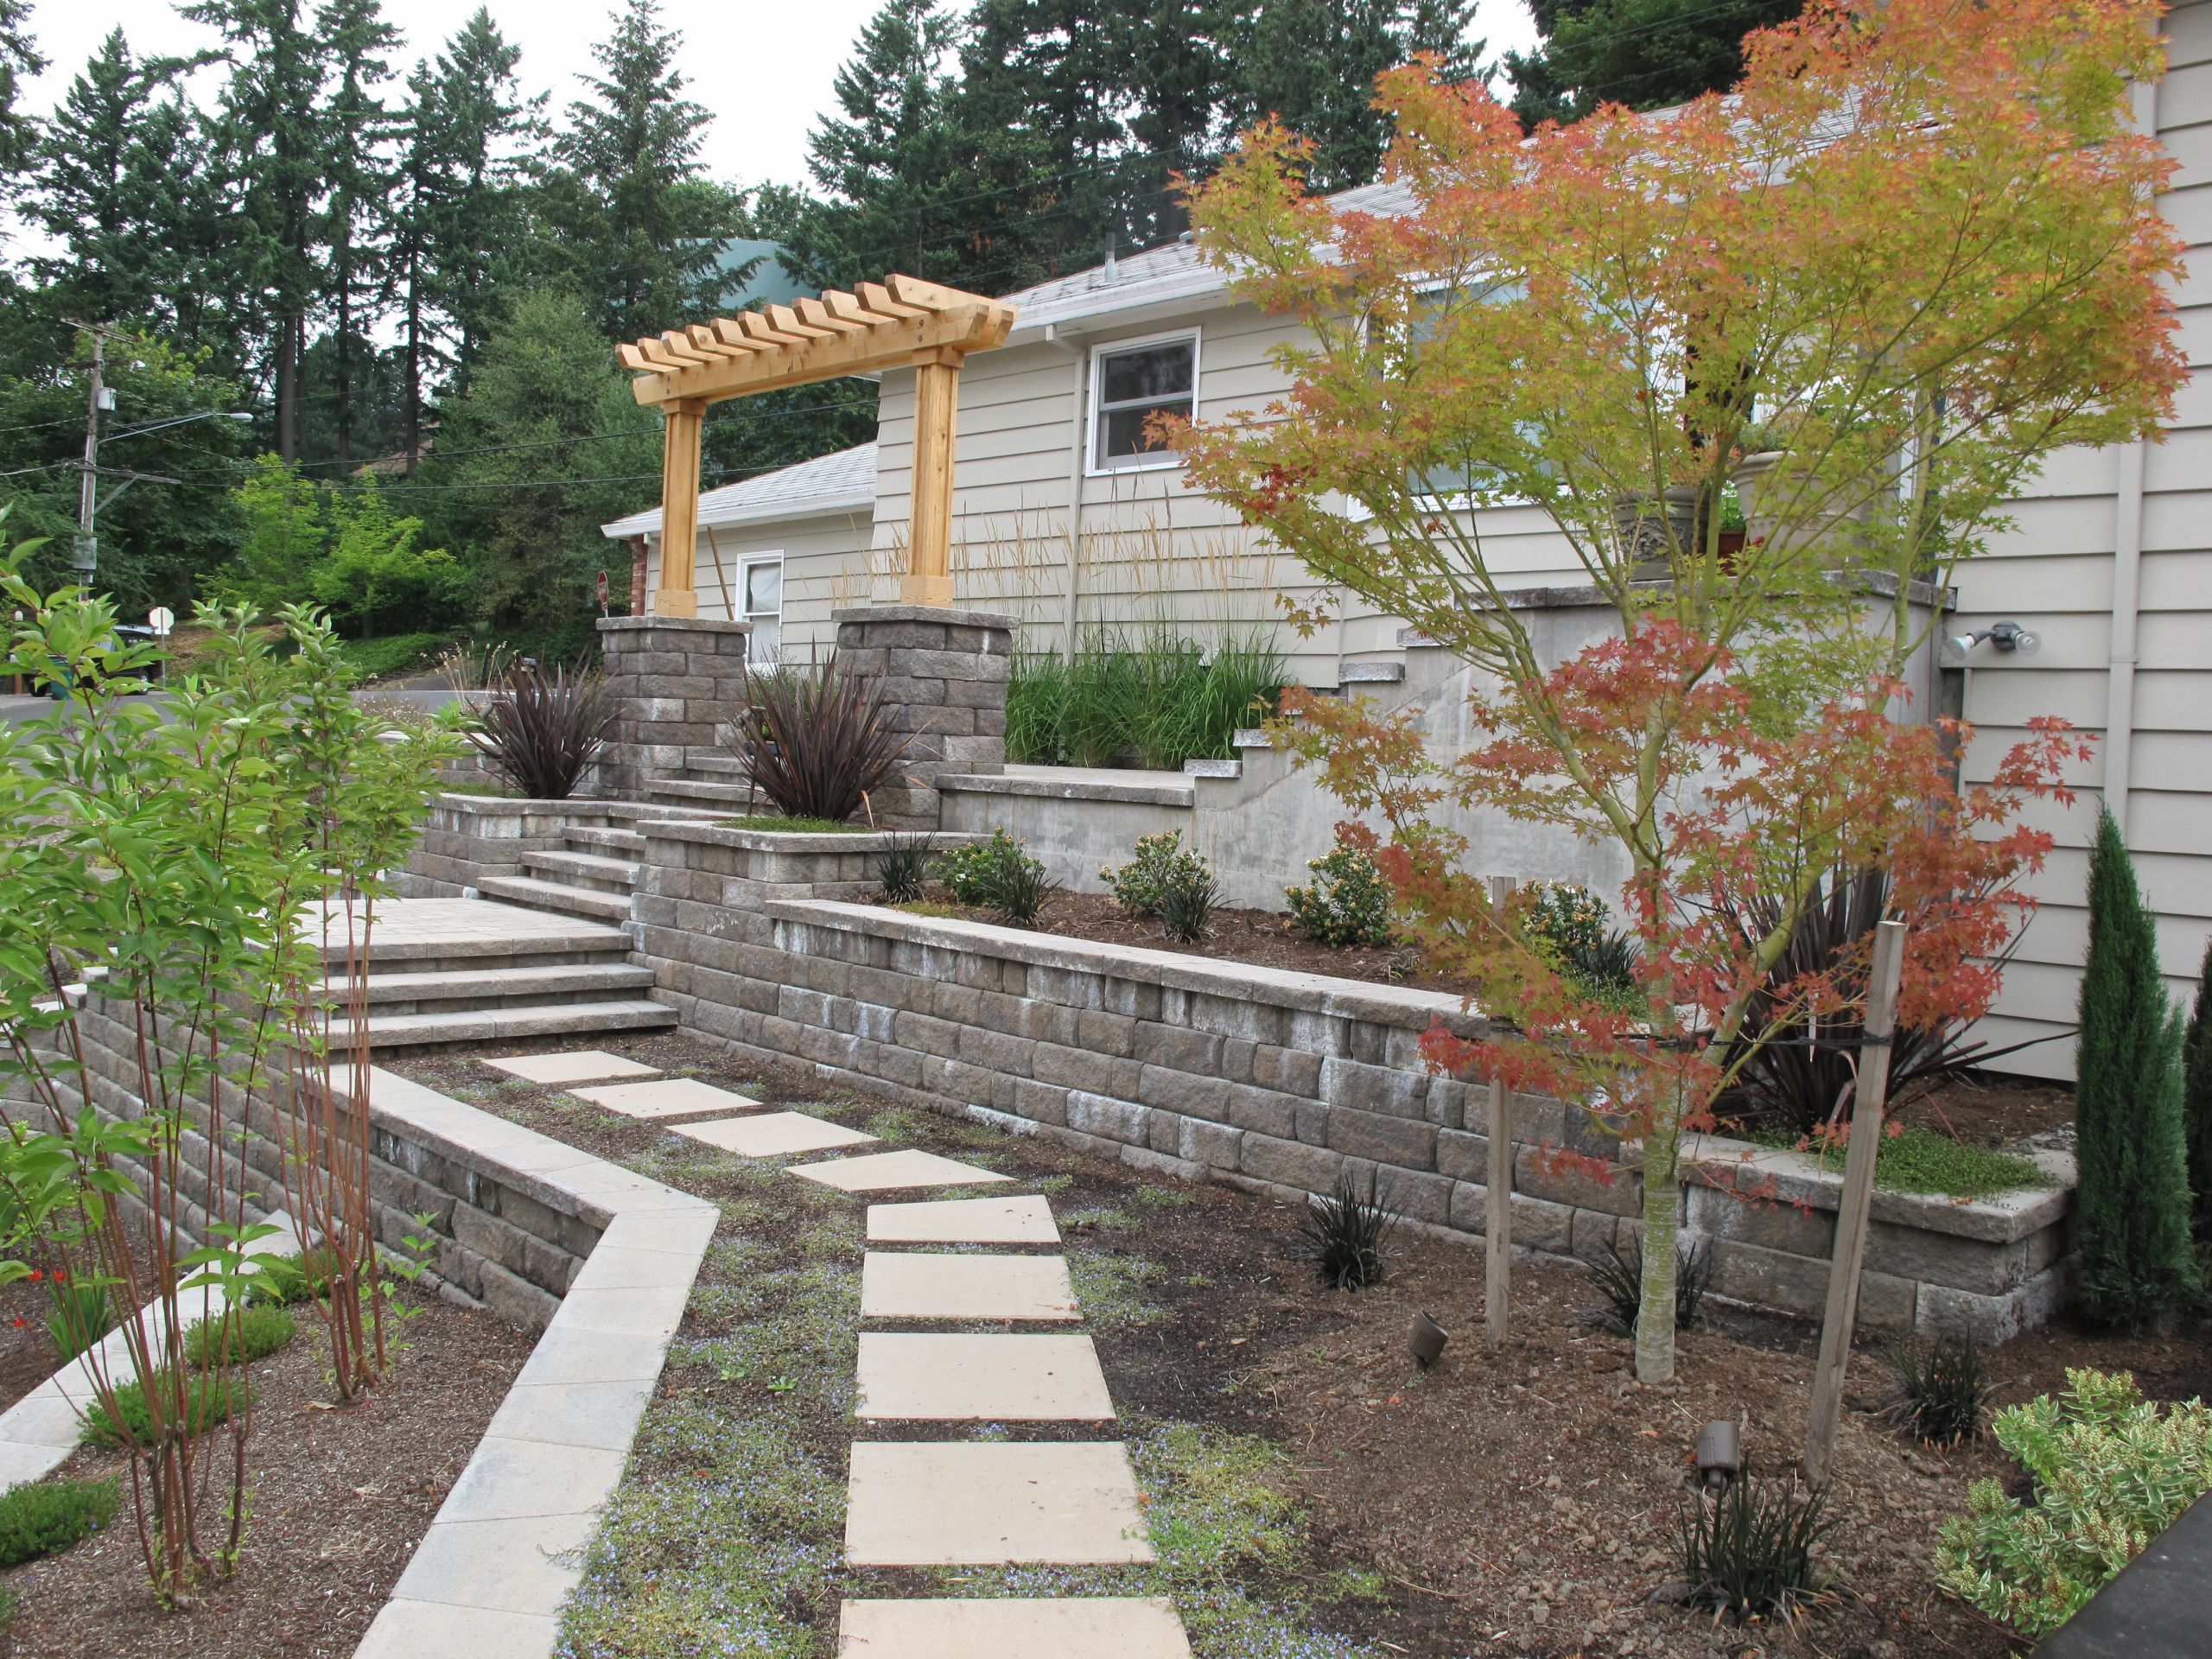 Landscape Retaining Wall Design  Do You Need a Retaining Wall